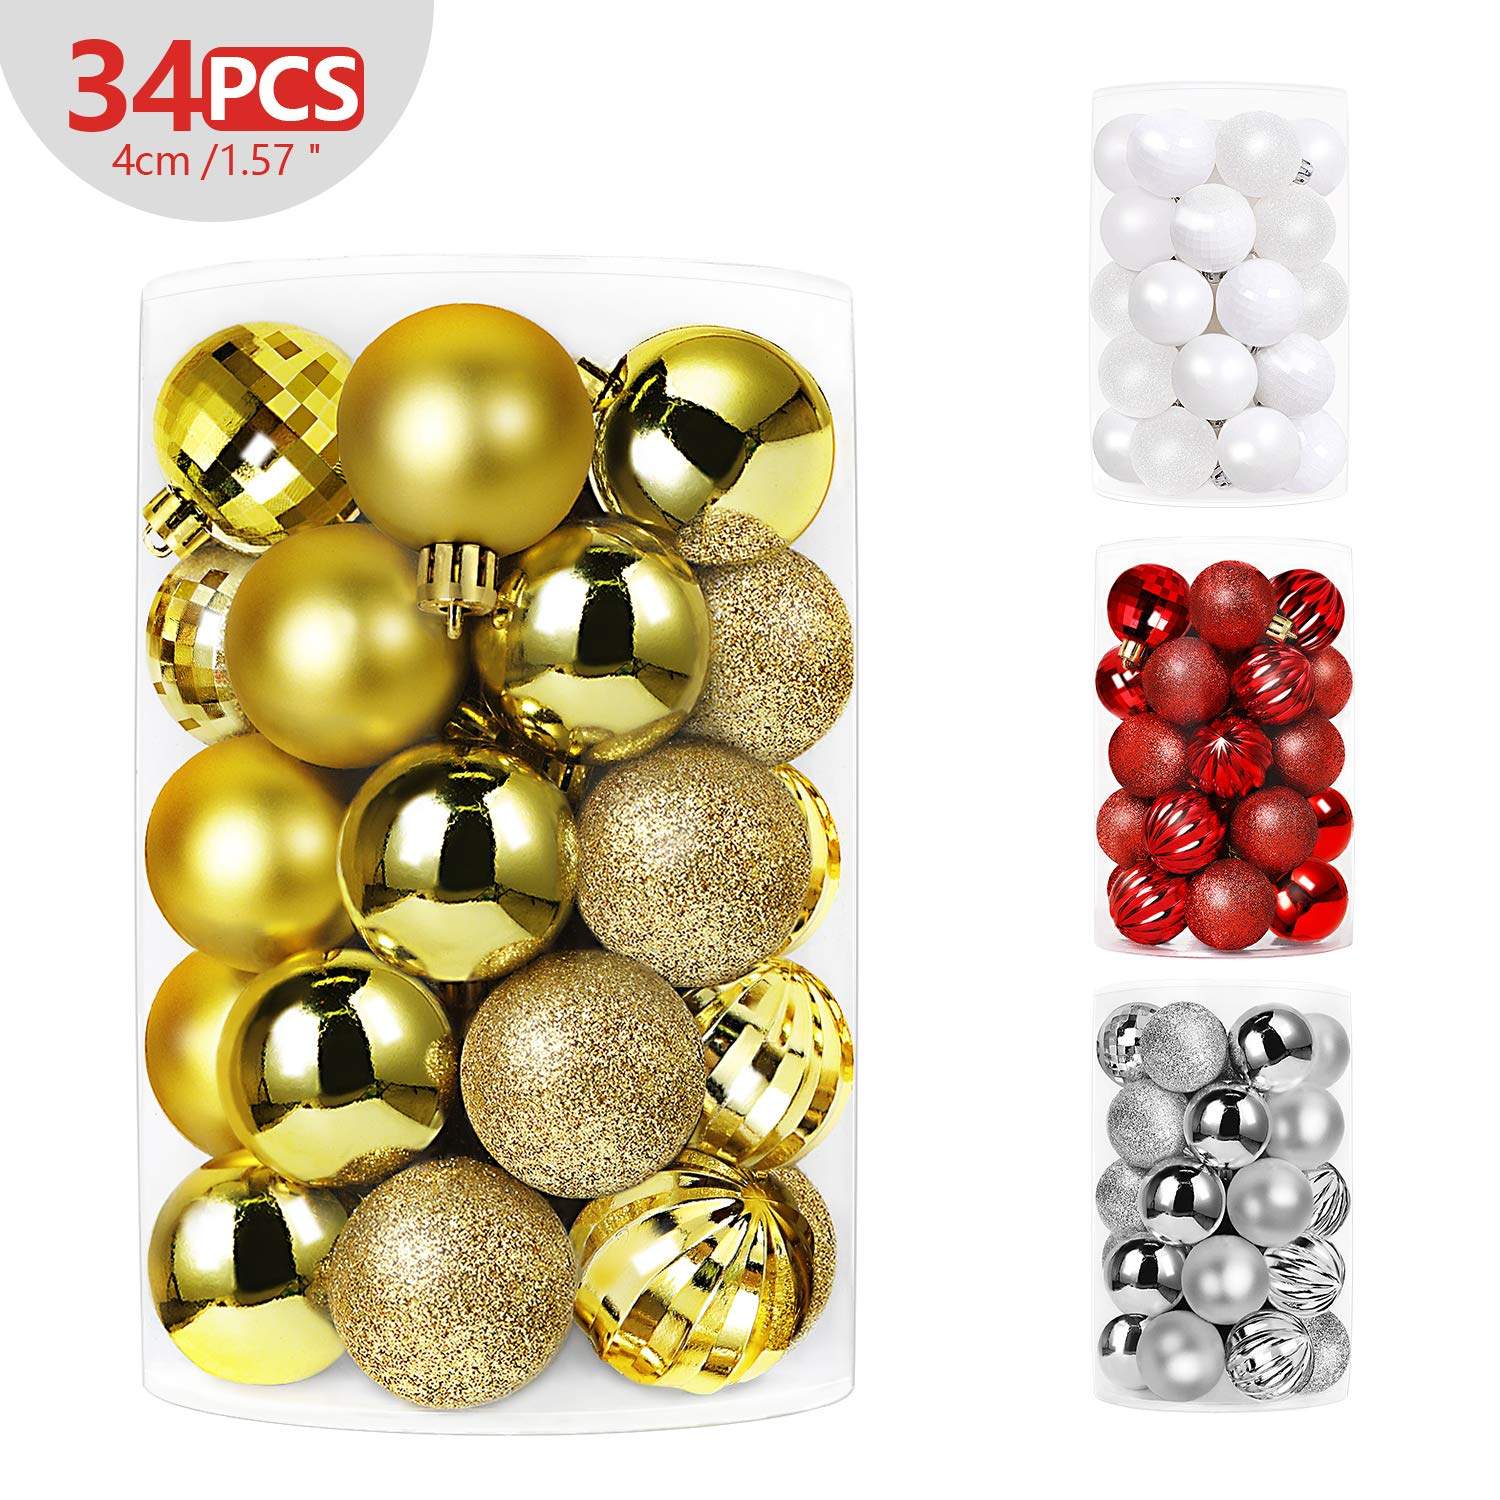 """SHareconn 34ct 1.57"""" Christmas Balls Ornaments Shatterproof Christmas Tree Decoration Ball for Family Holiday Party,Tree Ornaments Hooks Included (40mm Gold)"""